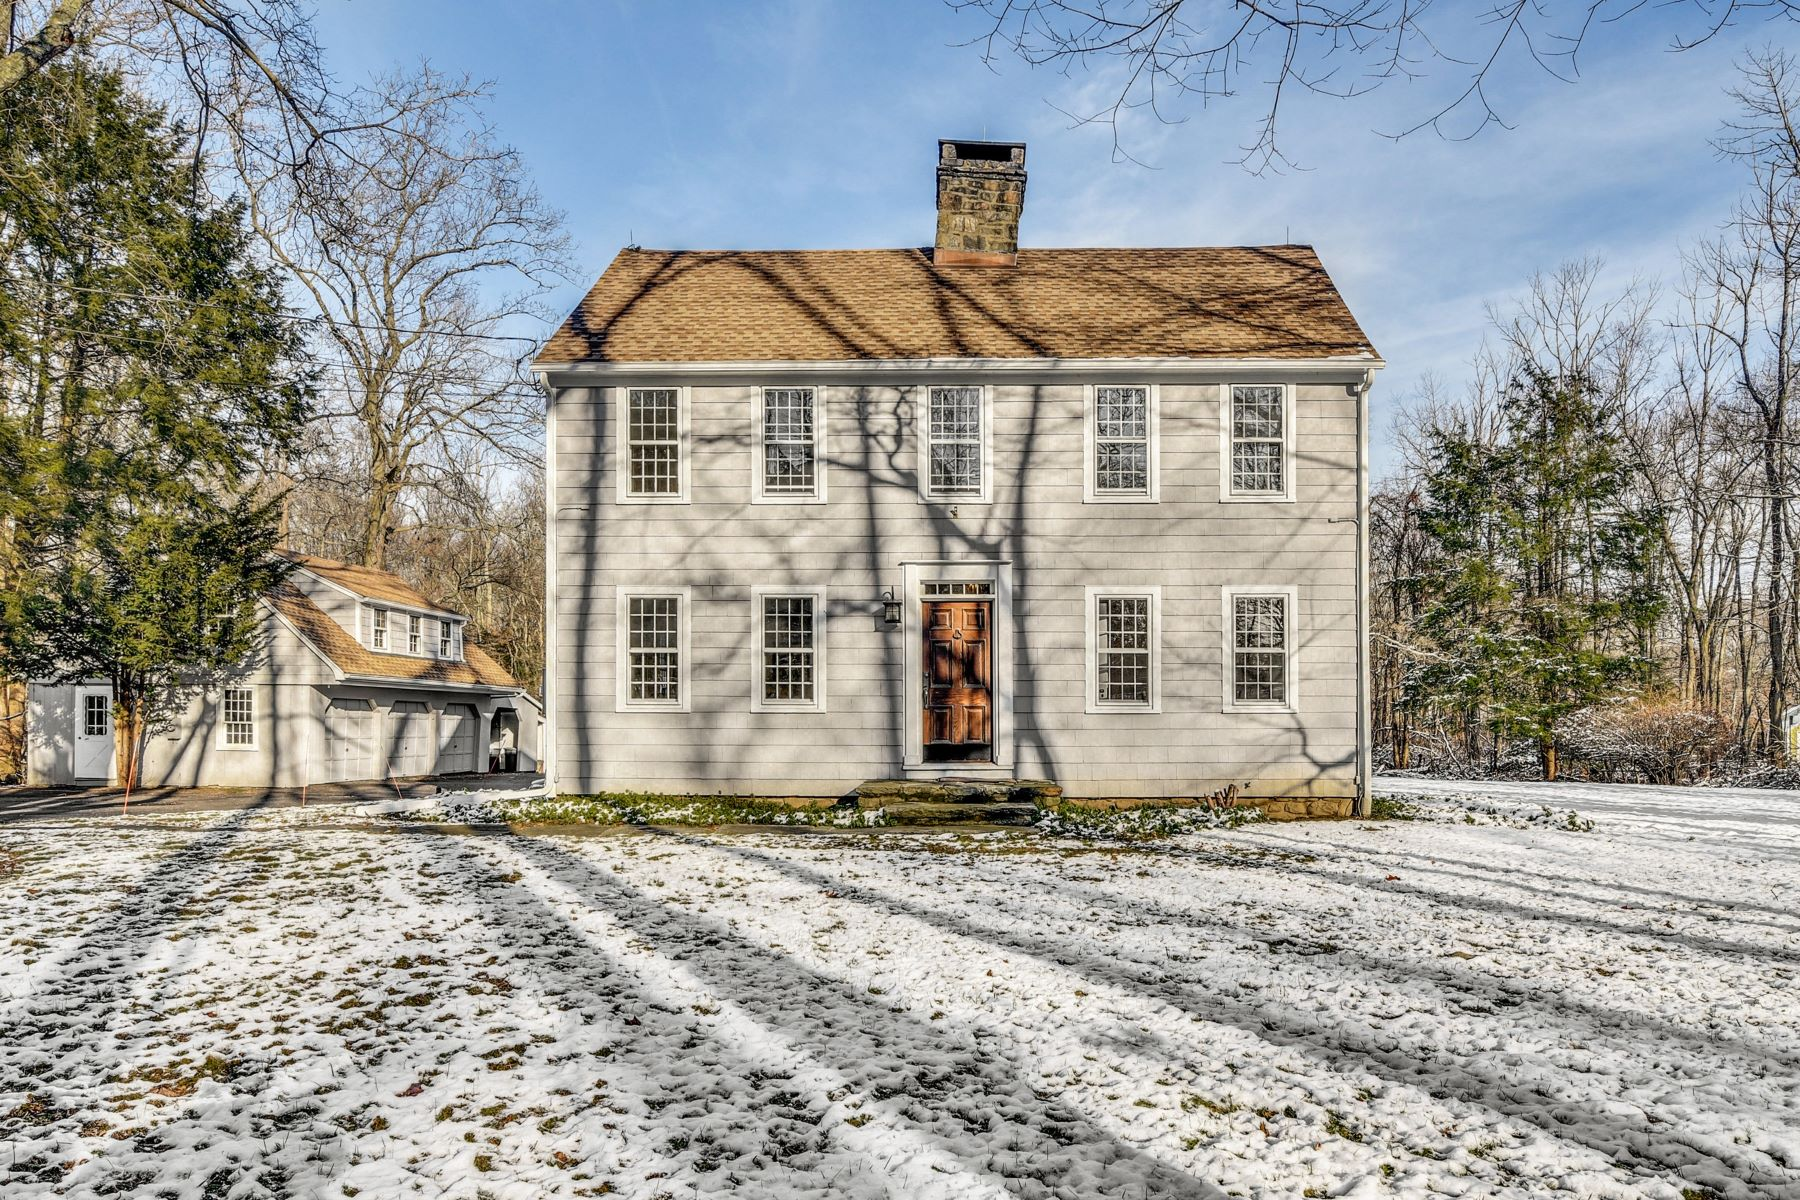 Single Family Homes for Sale at Gorgeous & Updated Classic New England Colonial 119 Weston Road Weston, Connecticut 06883 United States